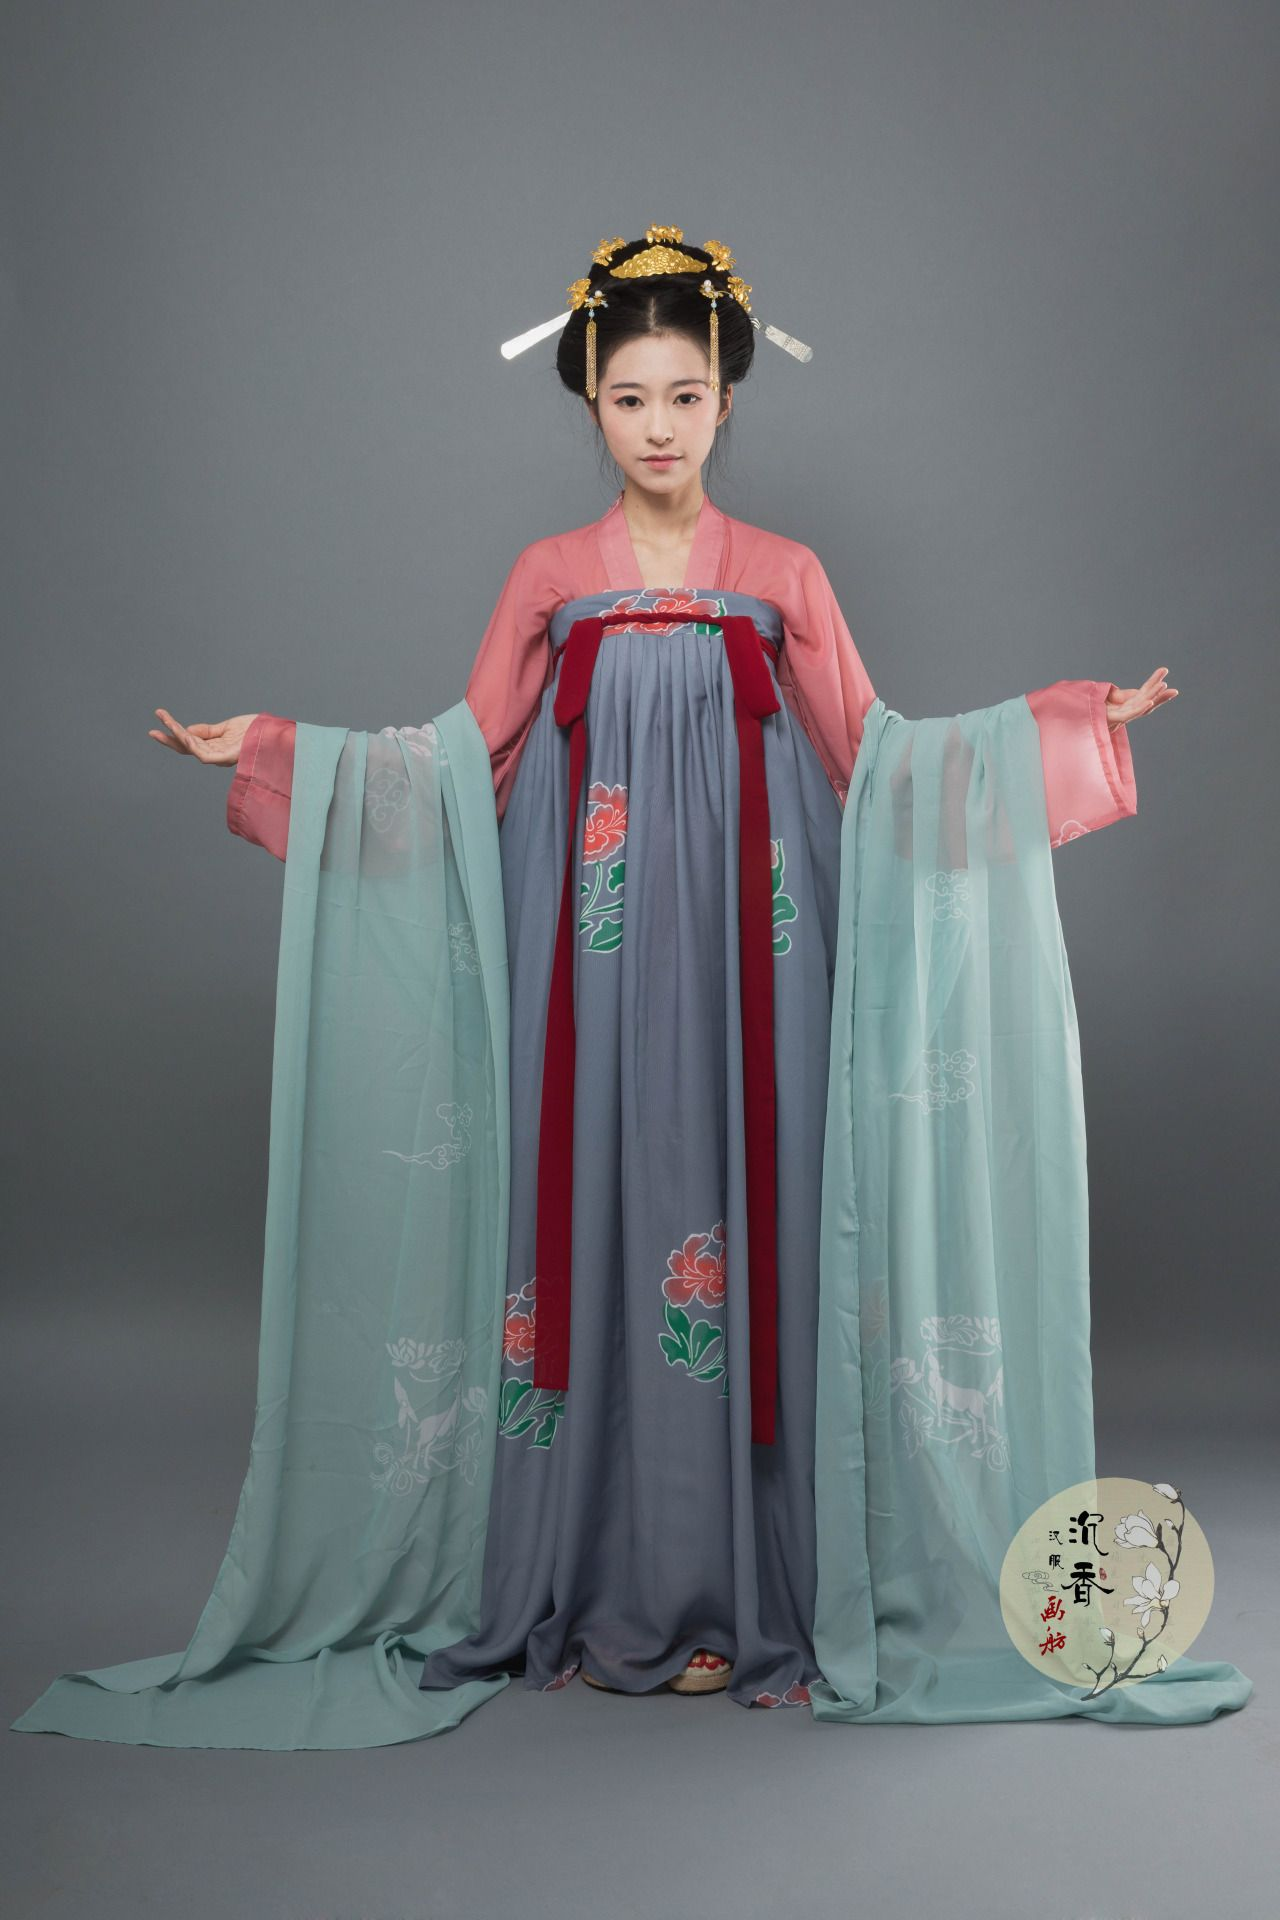 """c546add81 hanfugallery: """" Traditional Chinese hanfu, qixiong ruqun/chest-high ruqun.  Tang dynasty style. 沉香画舫 """""""